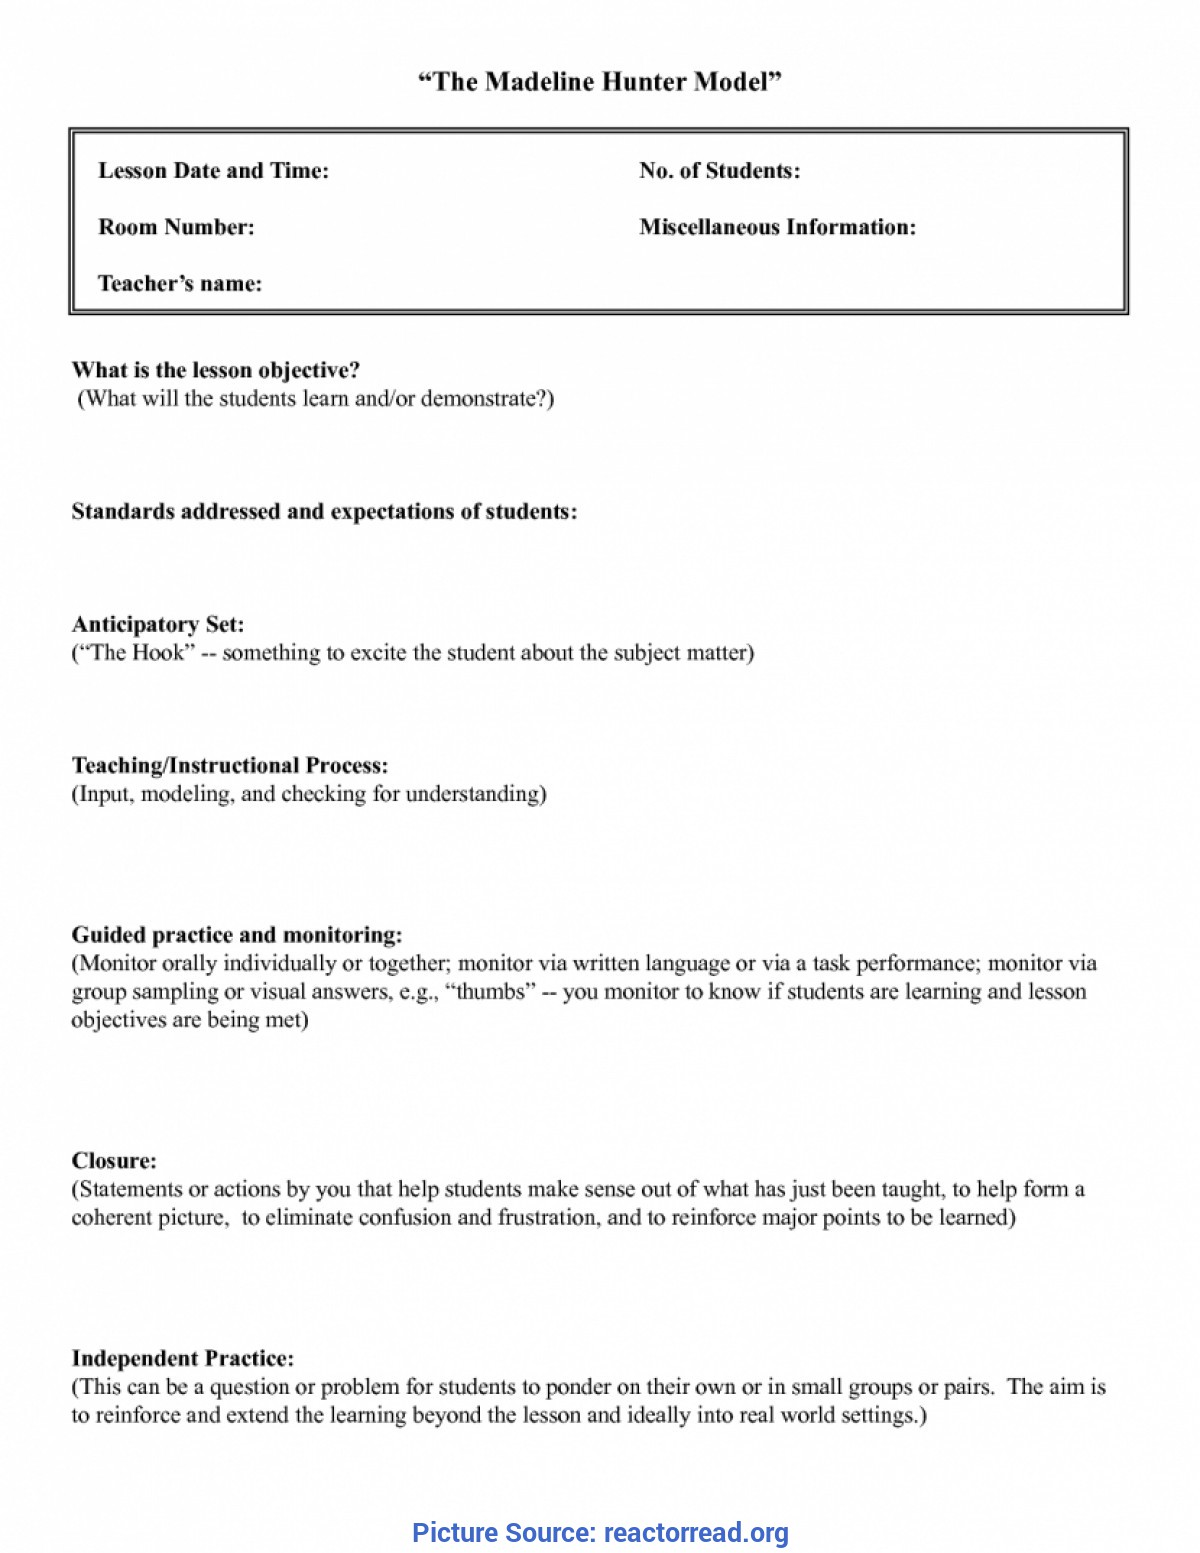 Typical Itip Lesson Plan Template Itip Lesson Plan Format | Reactorread